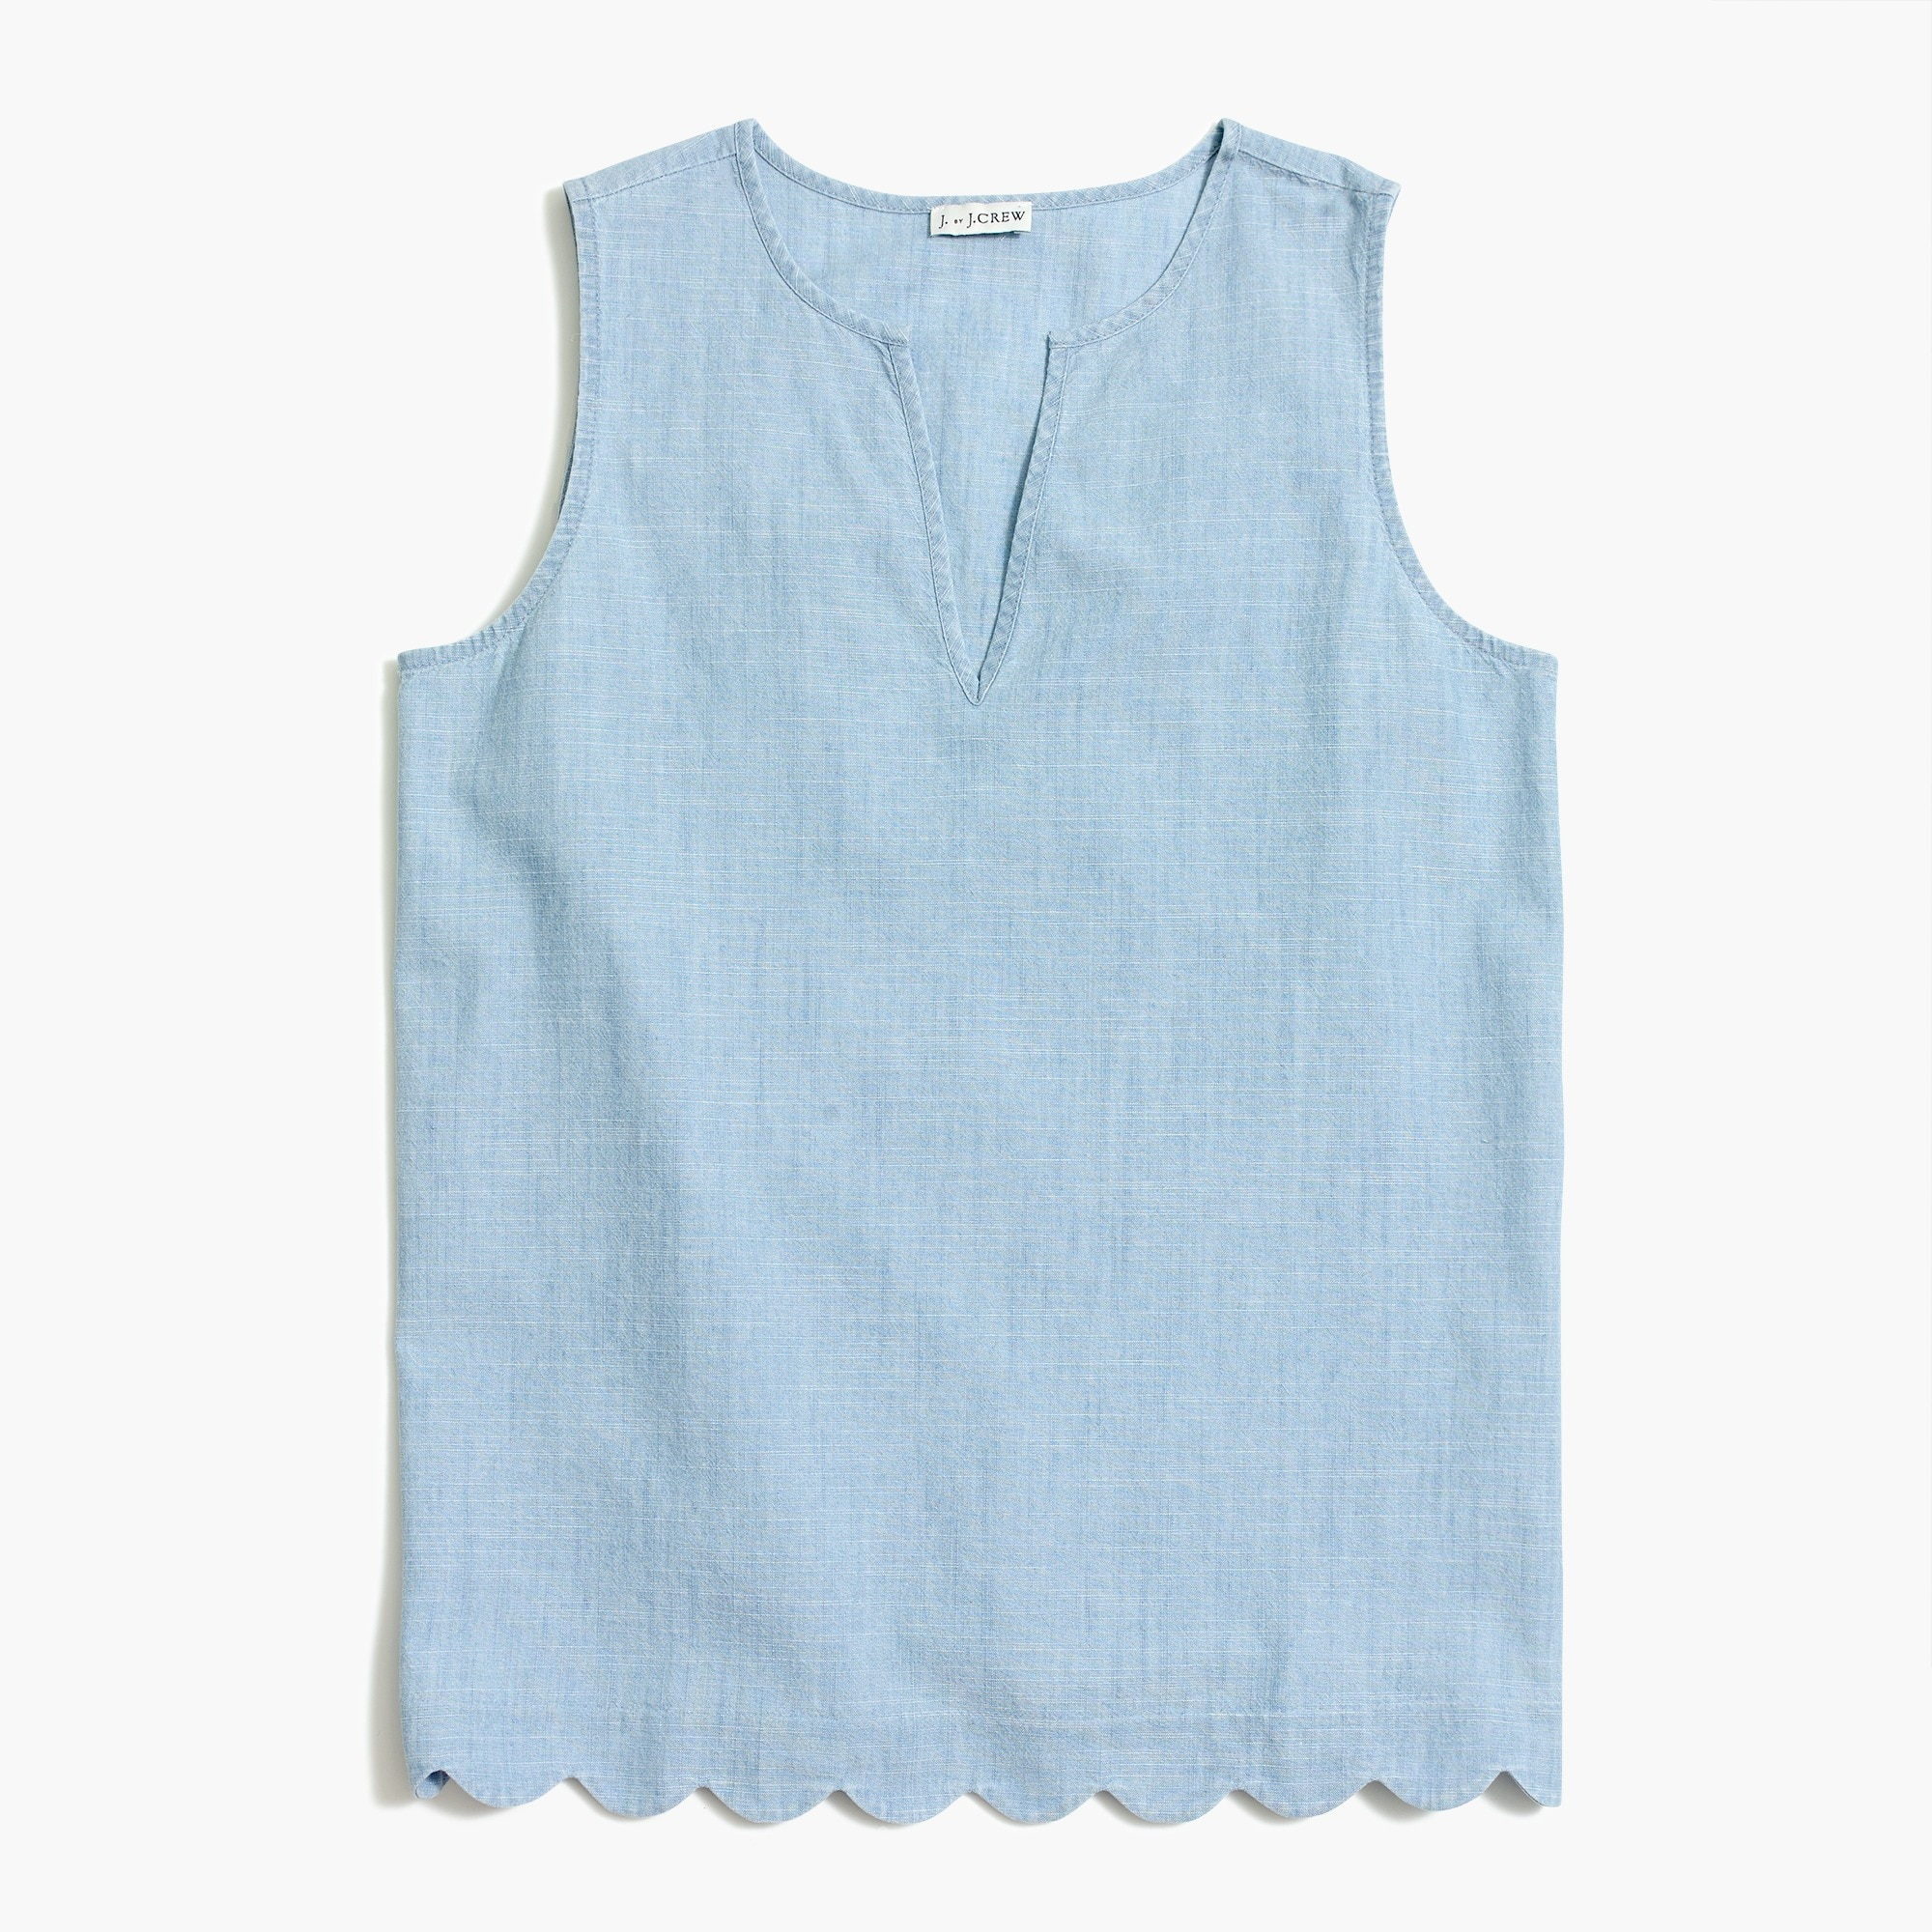 Scallop-hem shirt in chambray